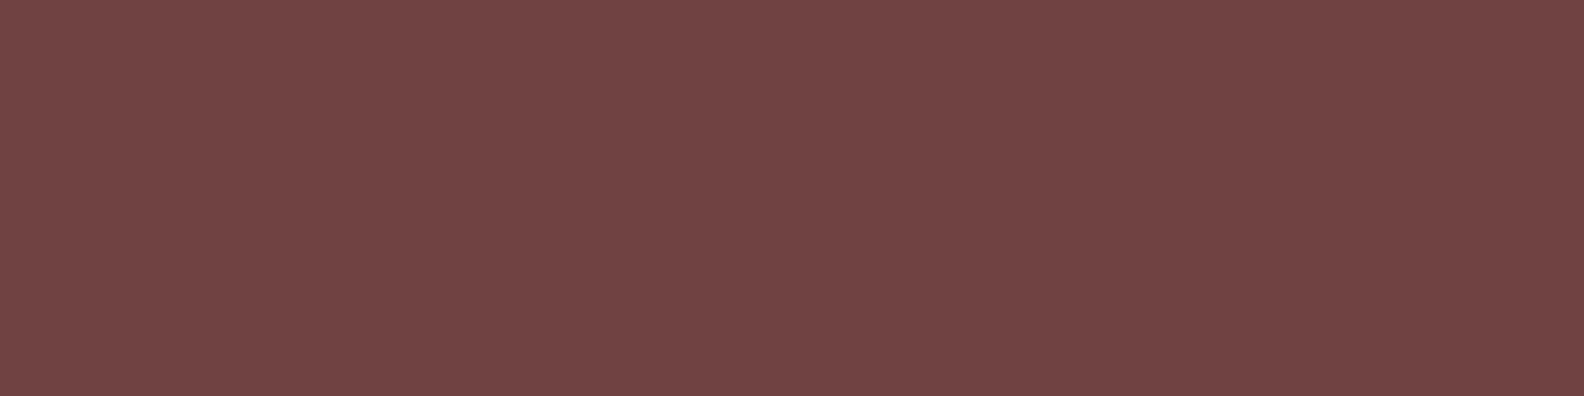 1584x396 Deep Coffee Solid Color Background